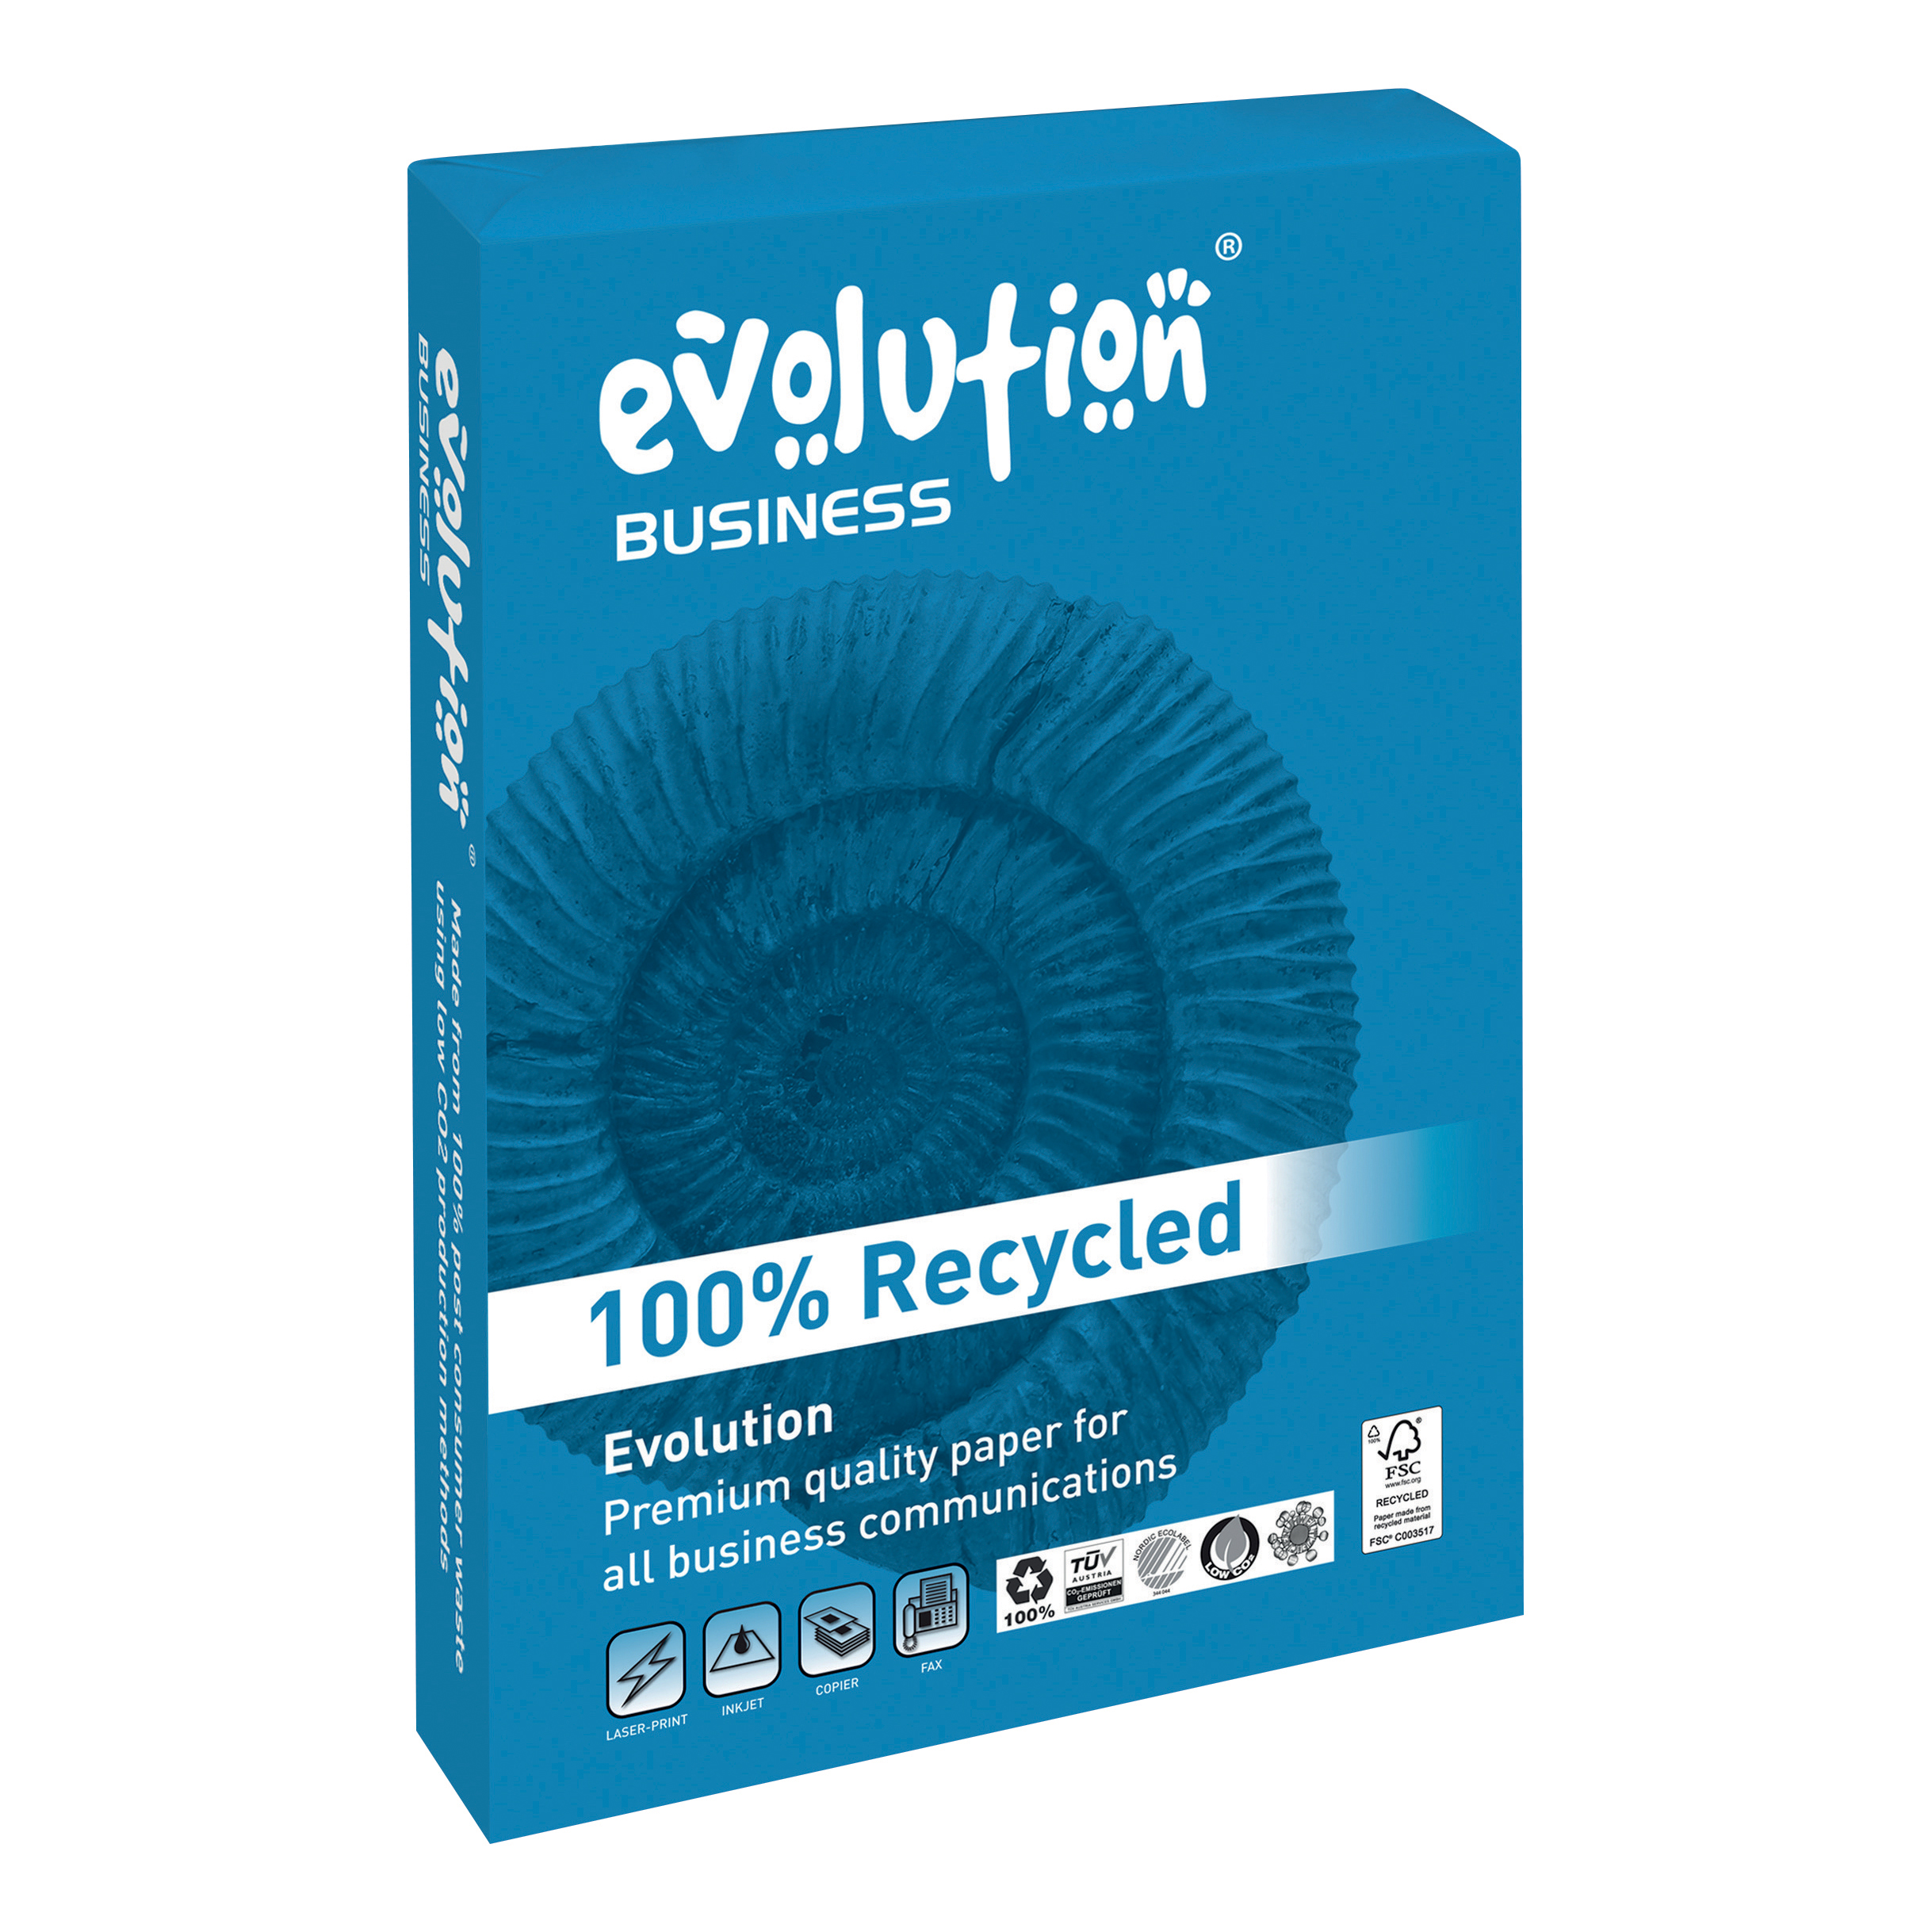 Evolution Business Paper FSC Recycled Ream-wrapped 90gsm A3 White Ref EVBU4290 500 Sheets